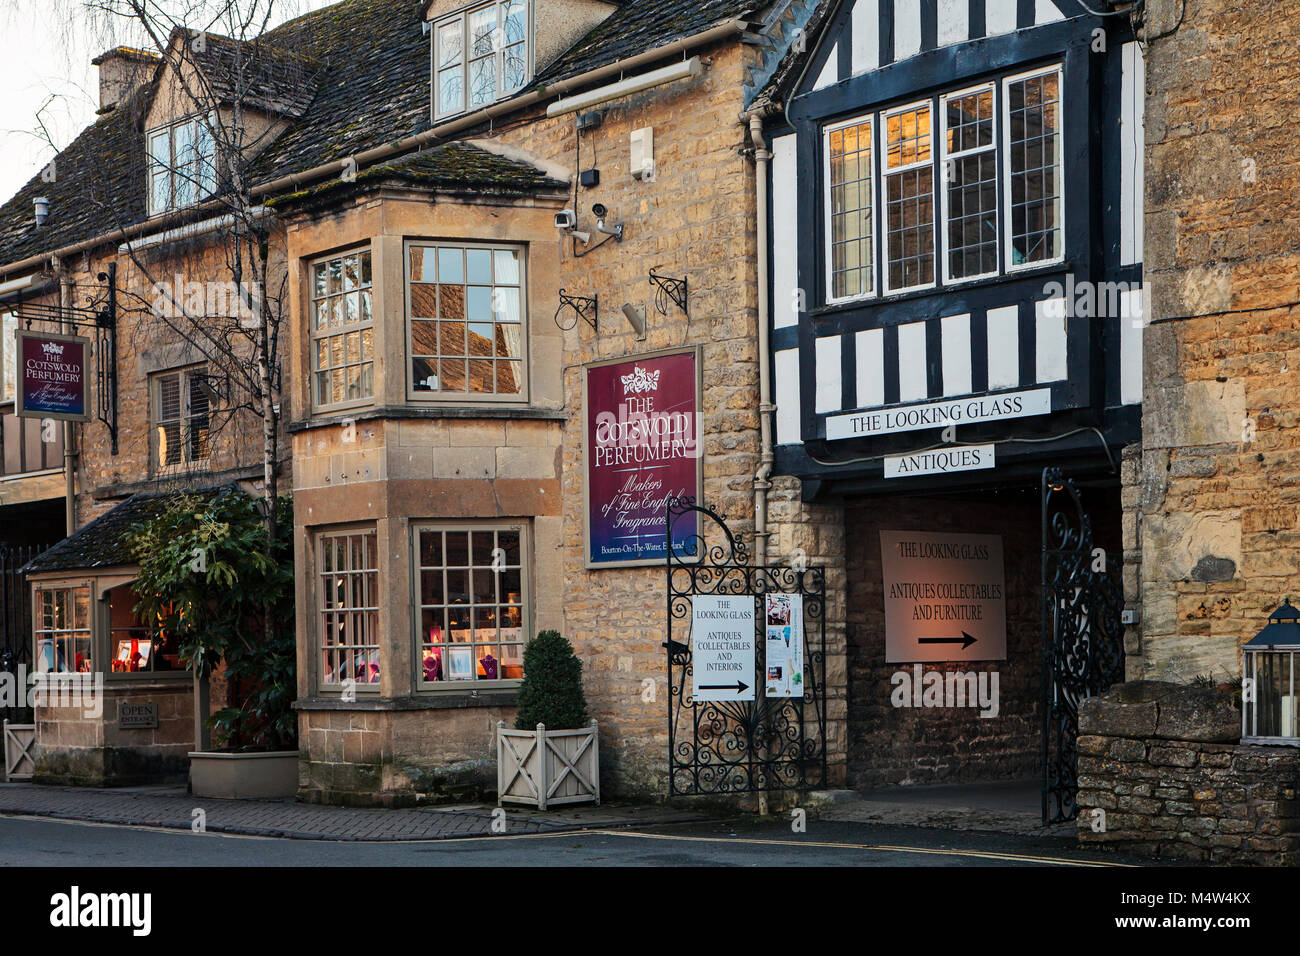 BOURTON ON THE WATER, UK - FEBRUARY 15th, 2018: Row of shops in Bourton-on-the-Water, which  is a village in Gloucestershire - Stock Image